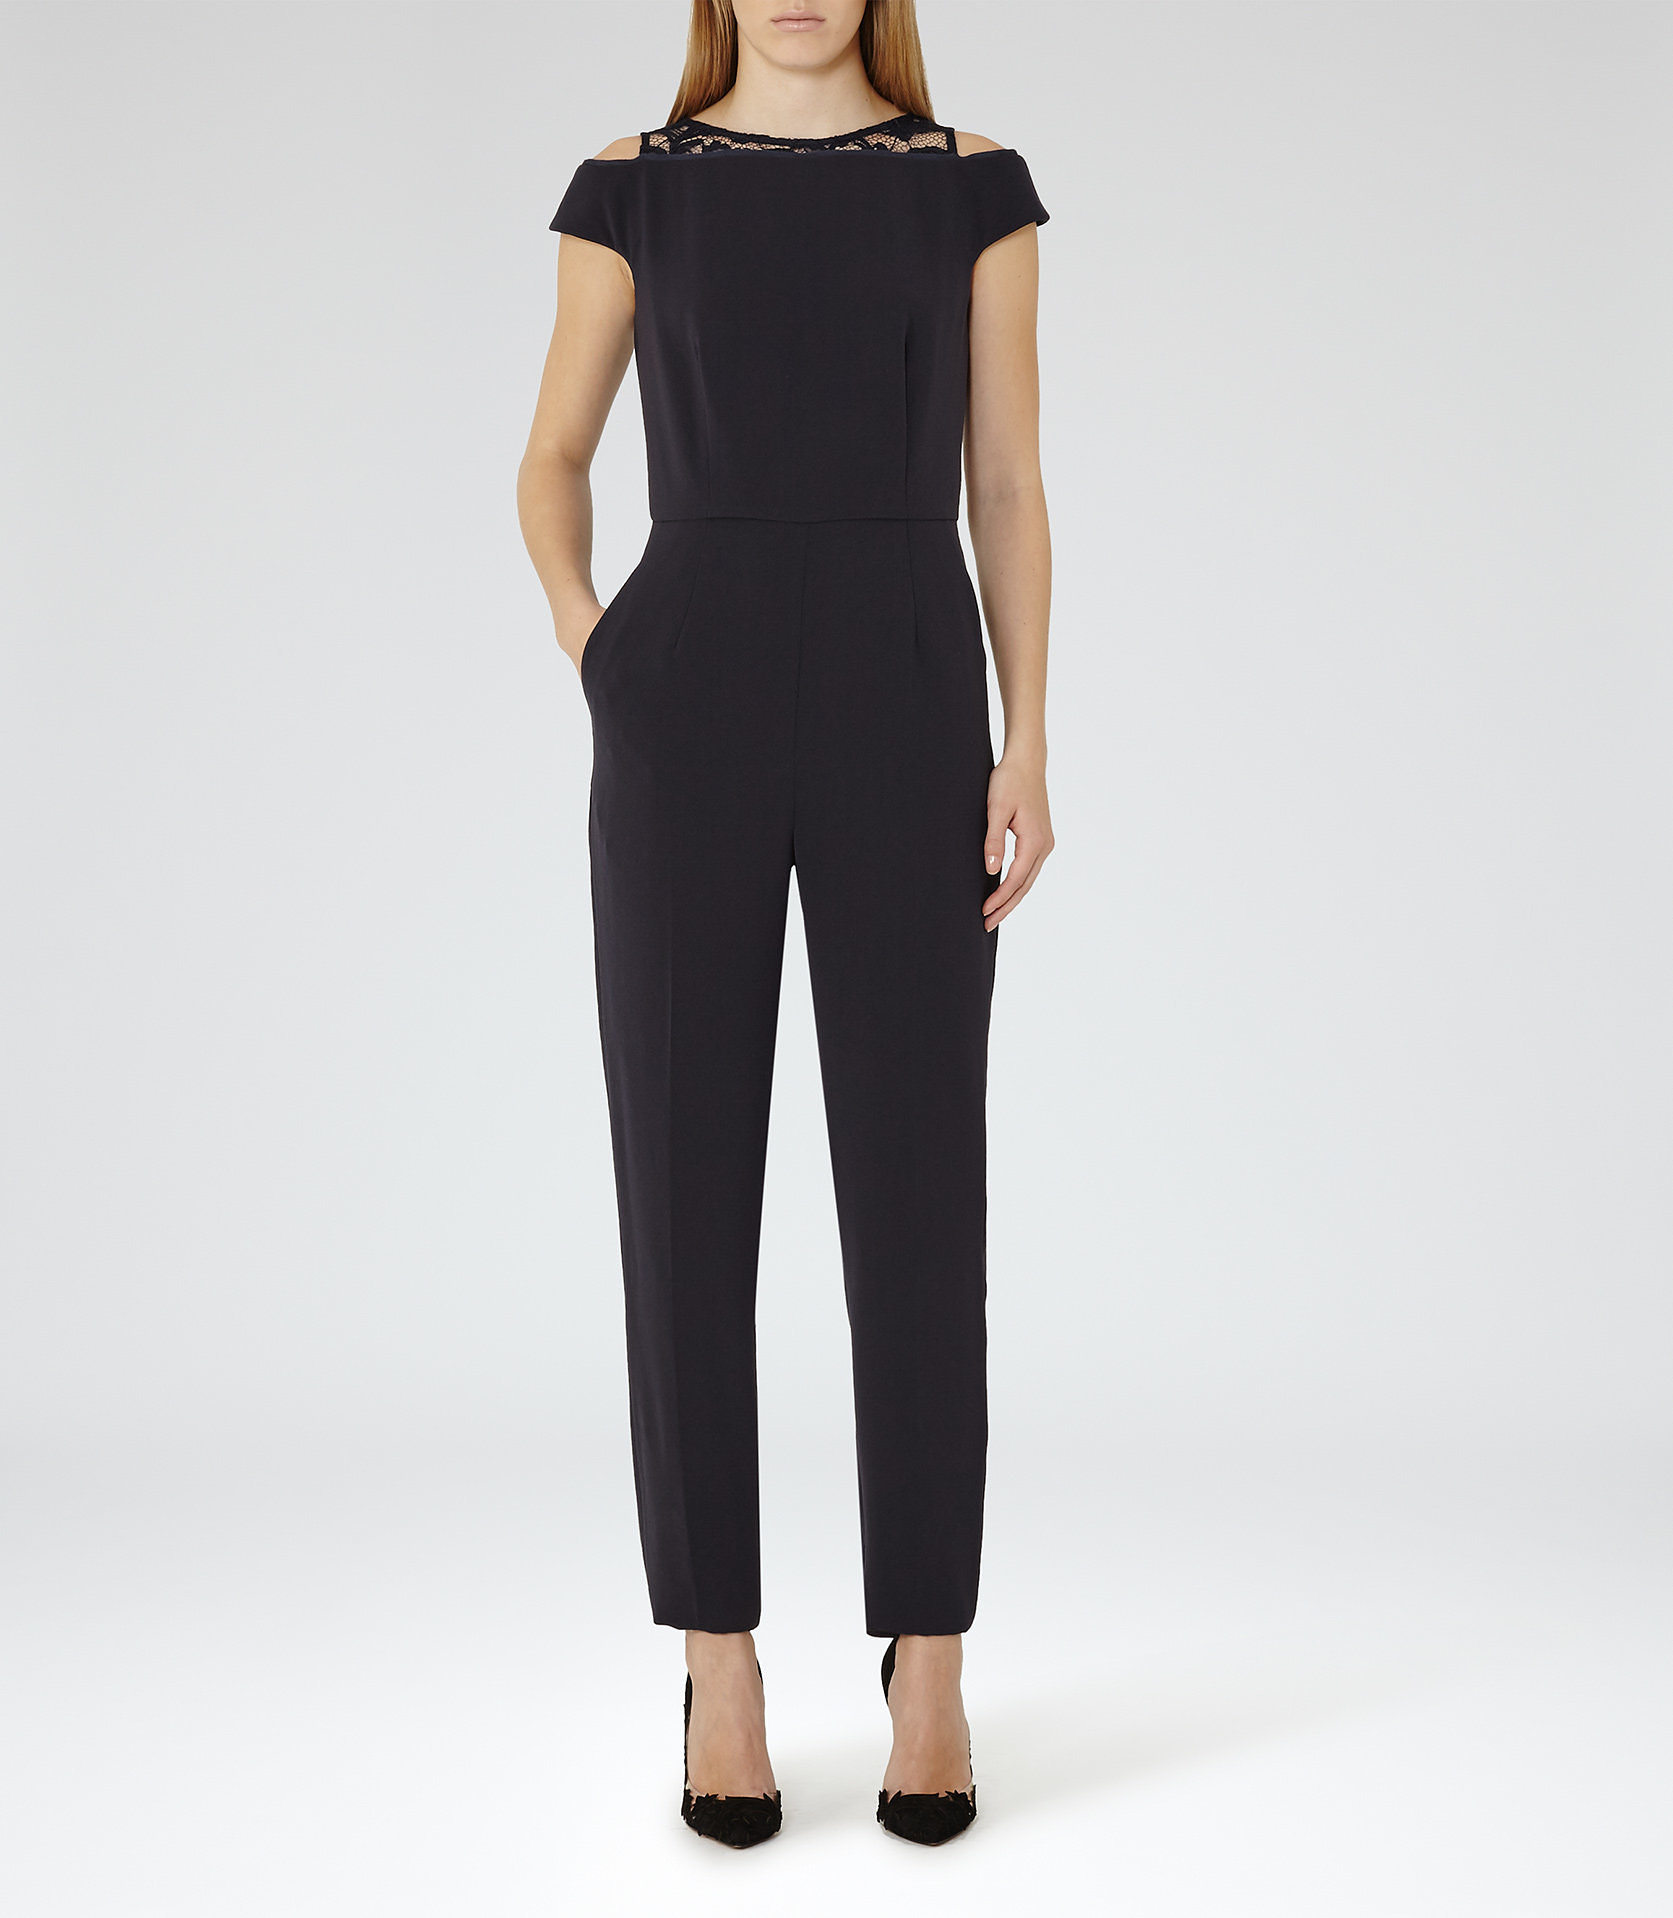 Nicky black jumpsuit